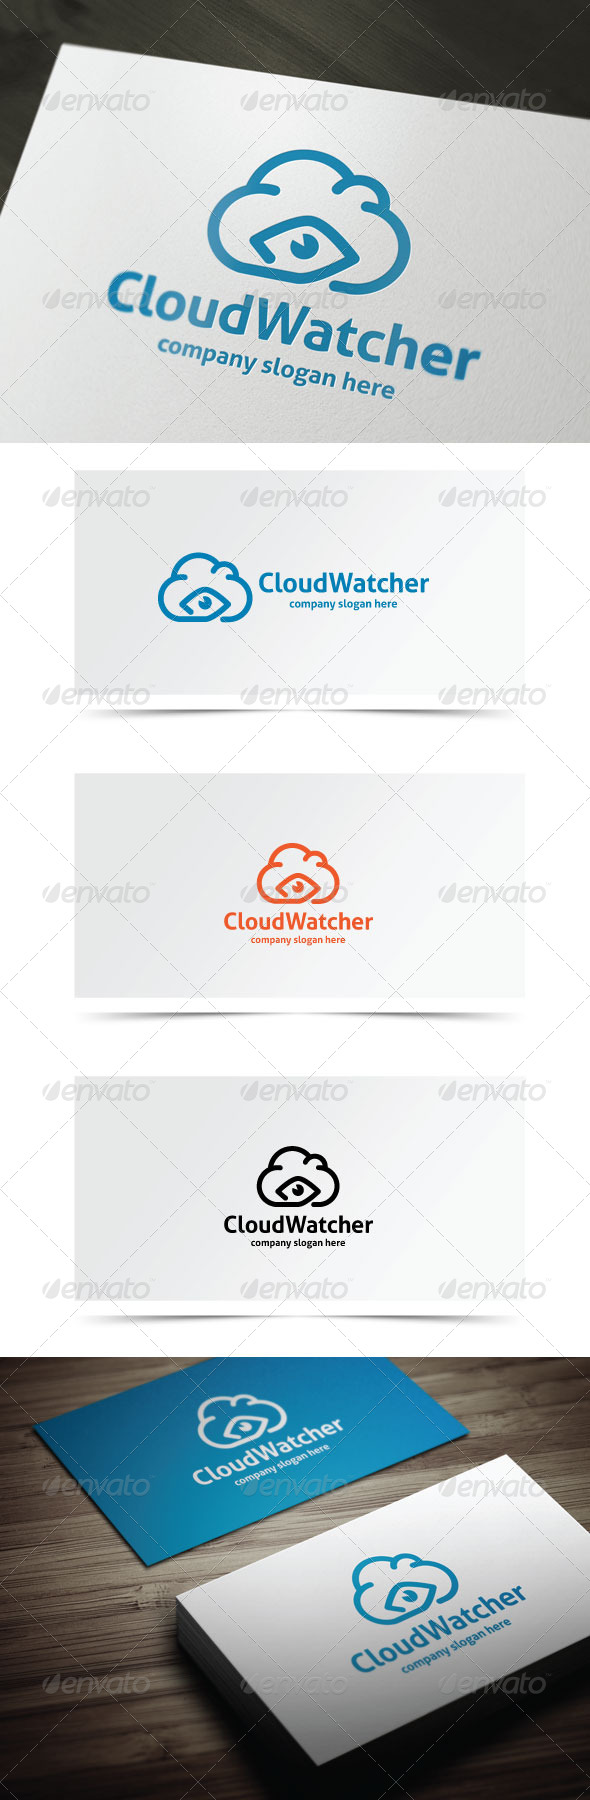 GraphicRiver Cloud Watcher 6704859